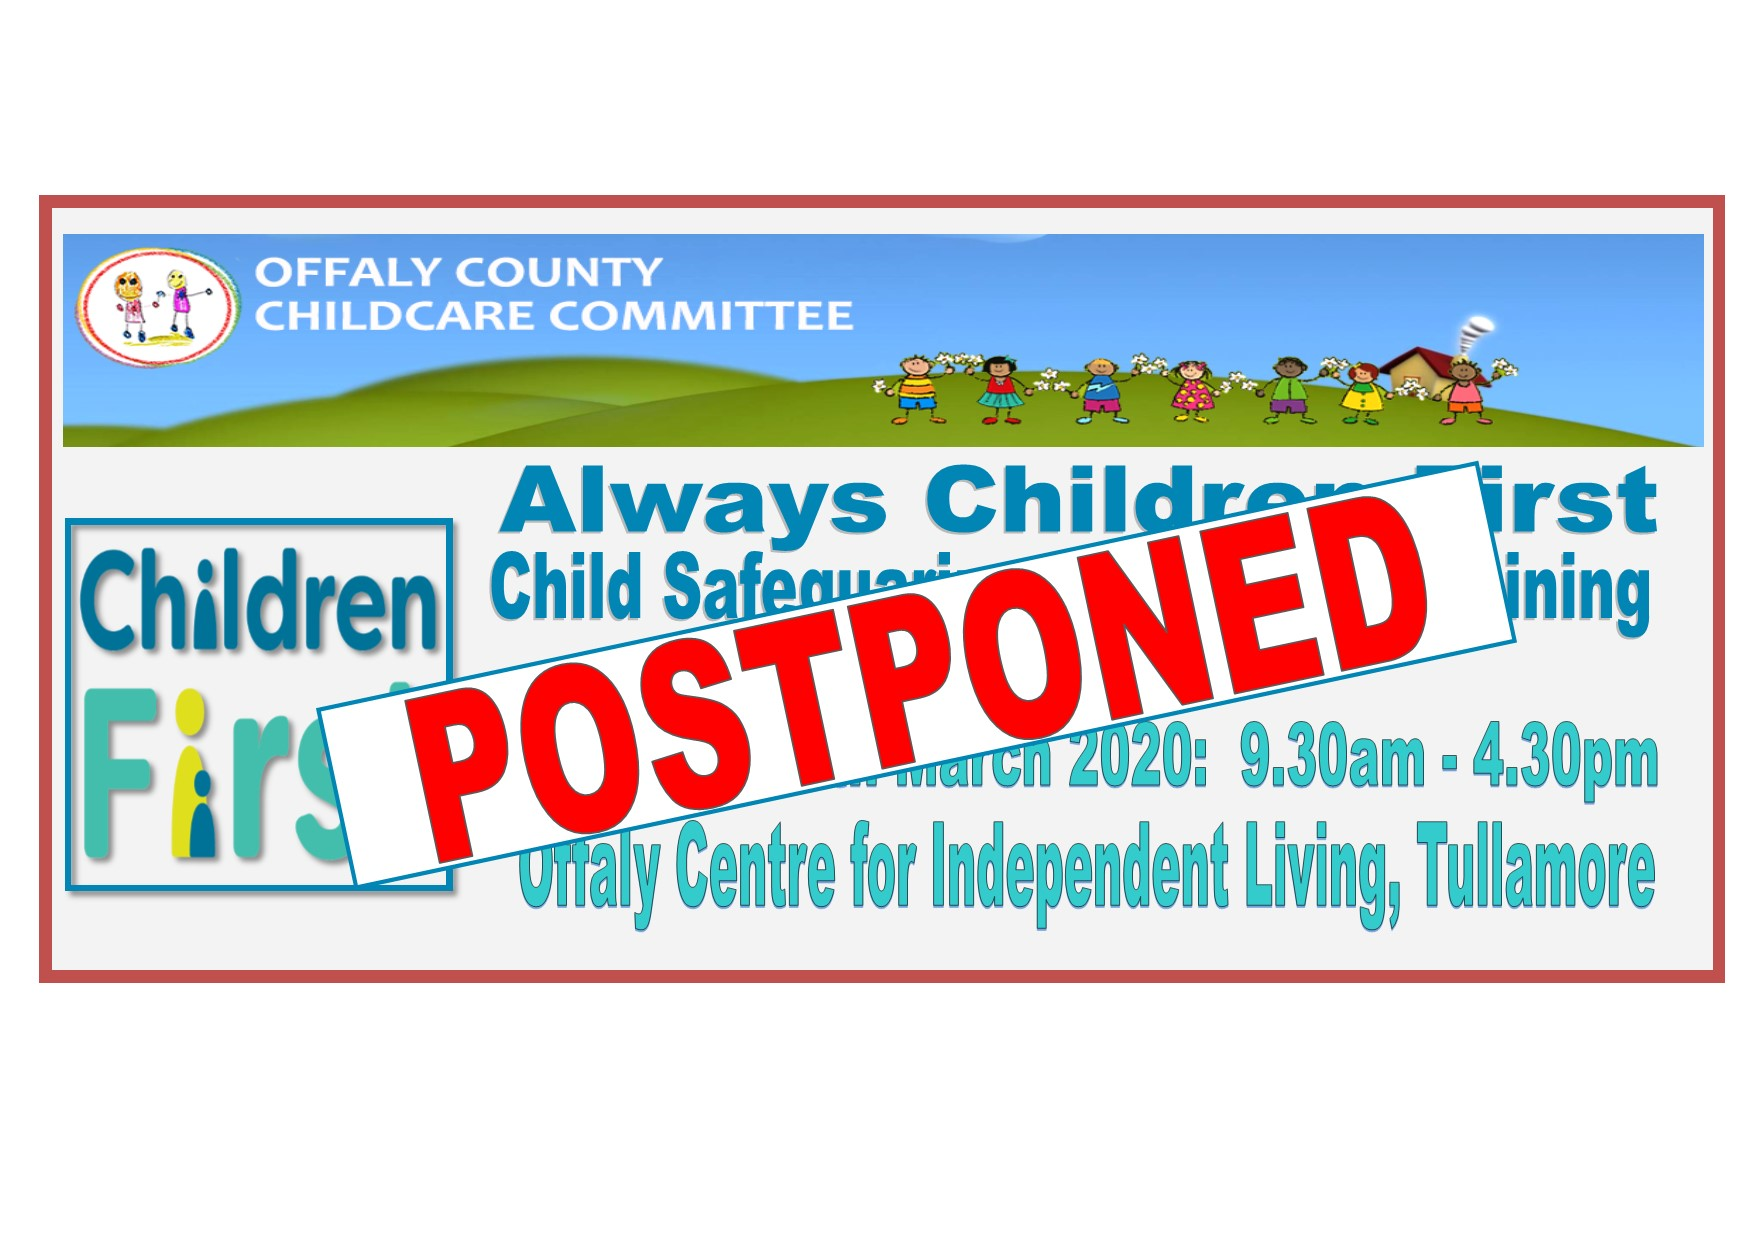 Child Protectiion Welfare Training MARCH 28TH POSTPONED